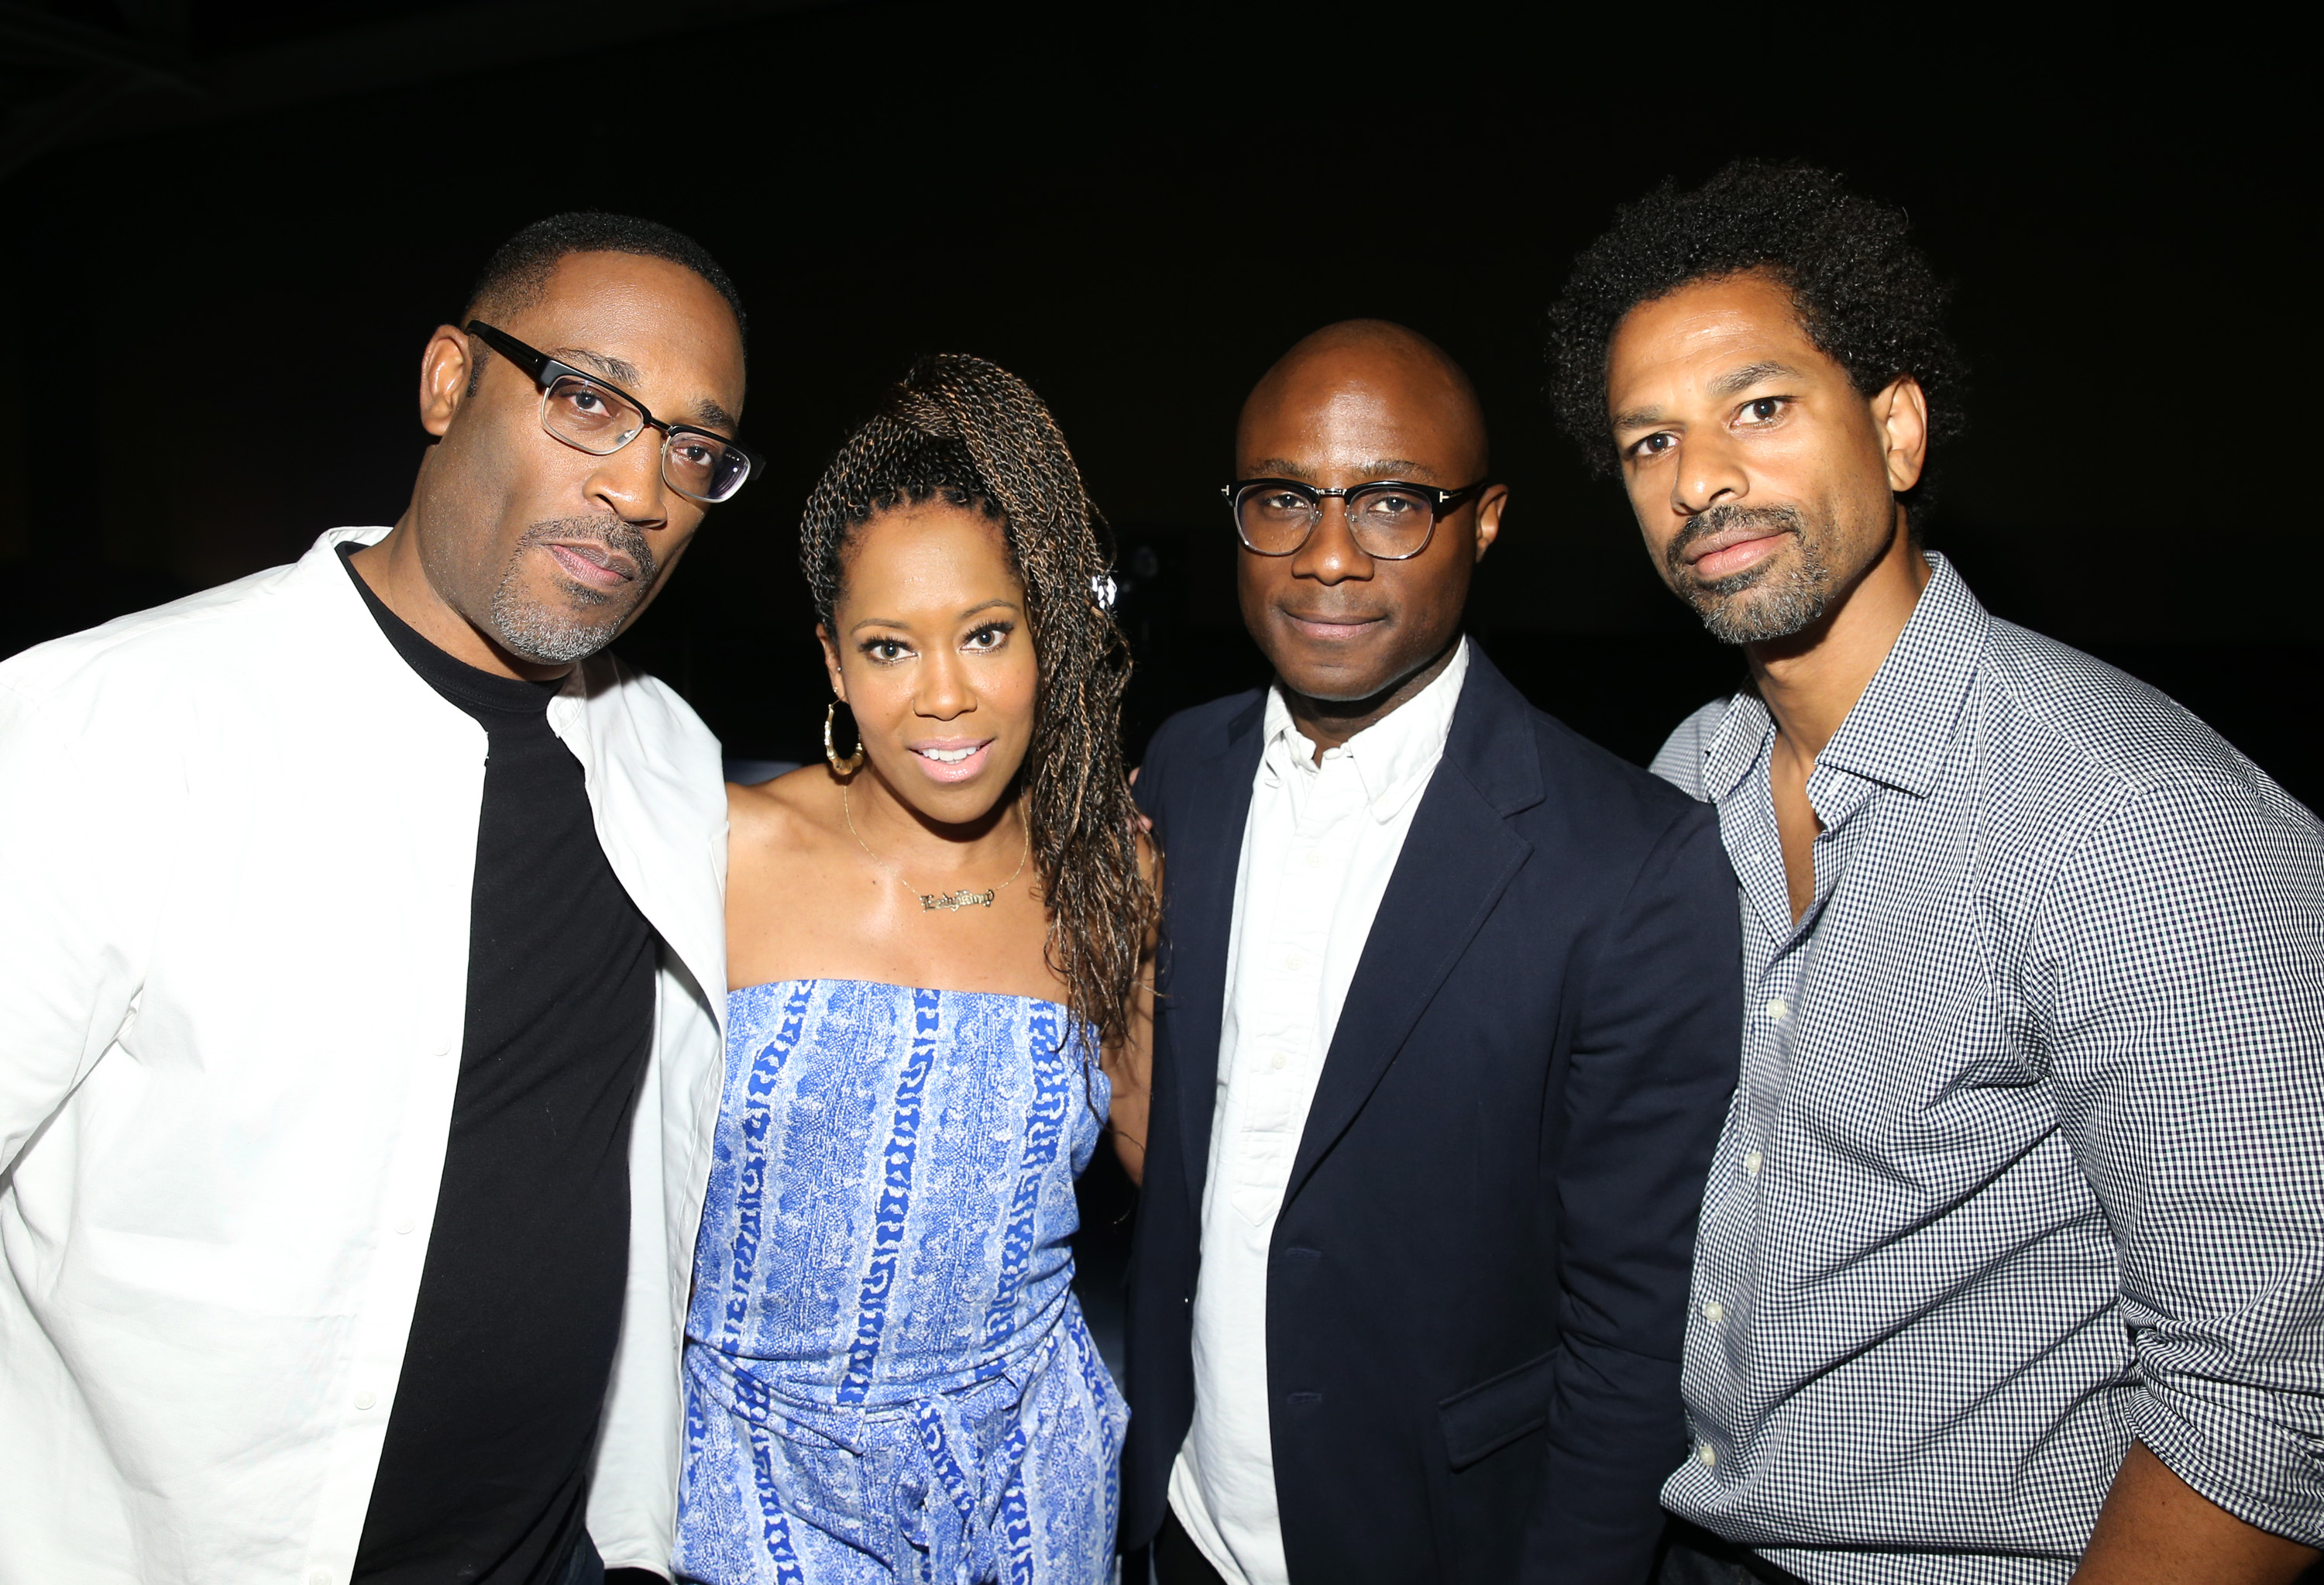 'If Beale Street Could Talk' Movie Cast And Filmmakers At Essence Festival 2018